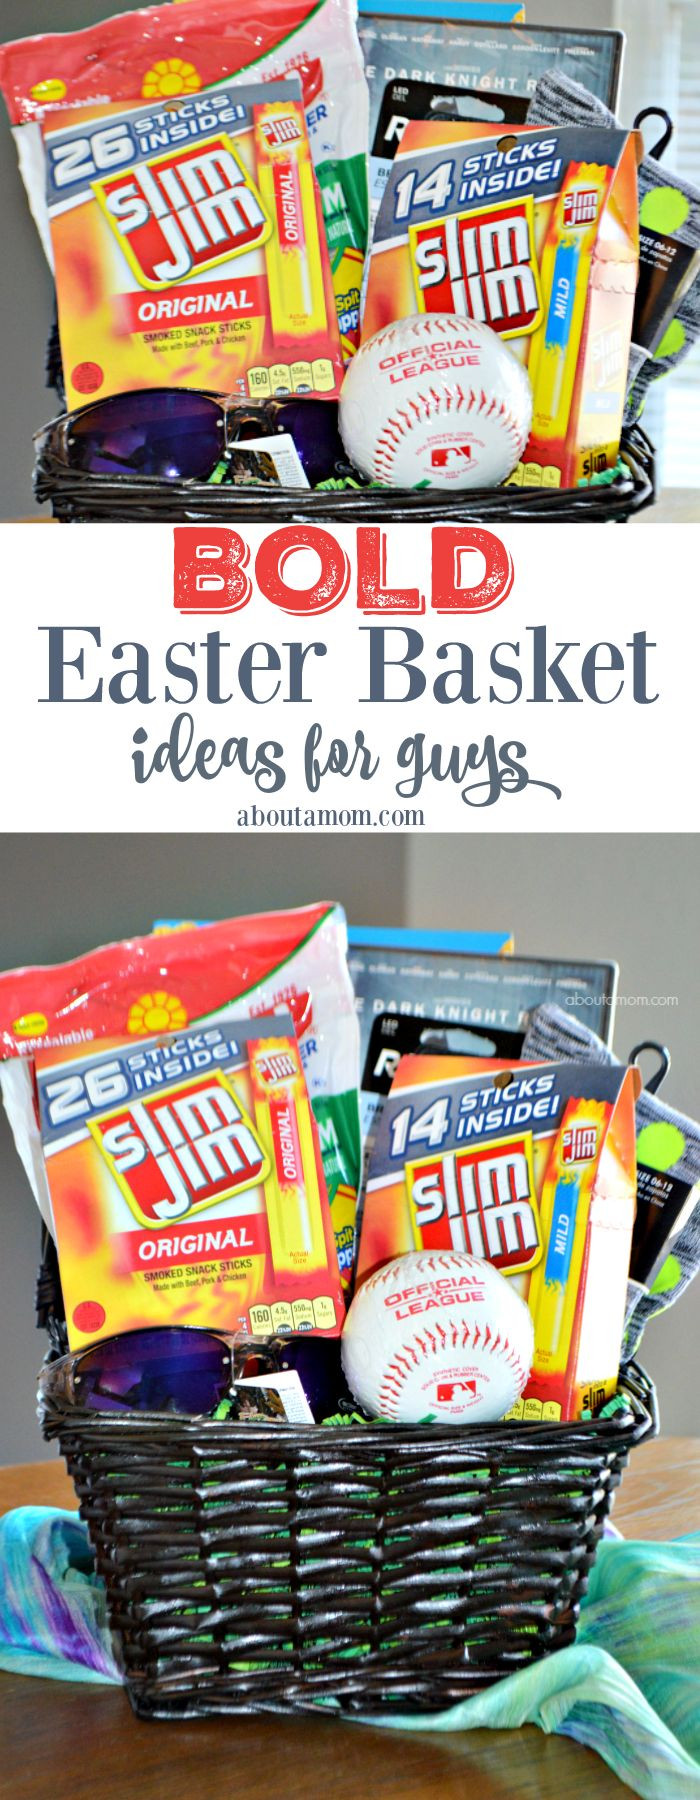 Easter Gift Ideas For Boys  25 best ideas about Easter baskets on Pinterest